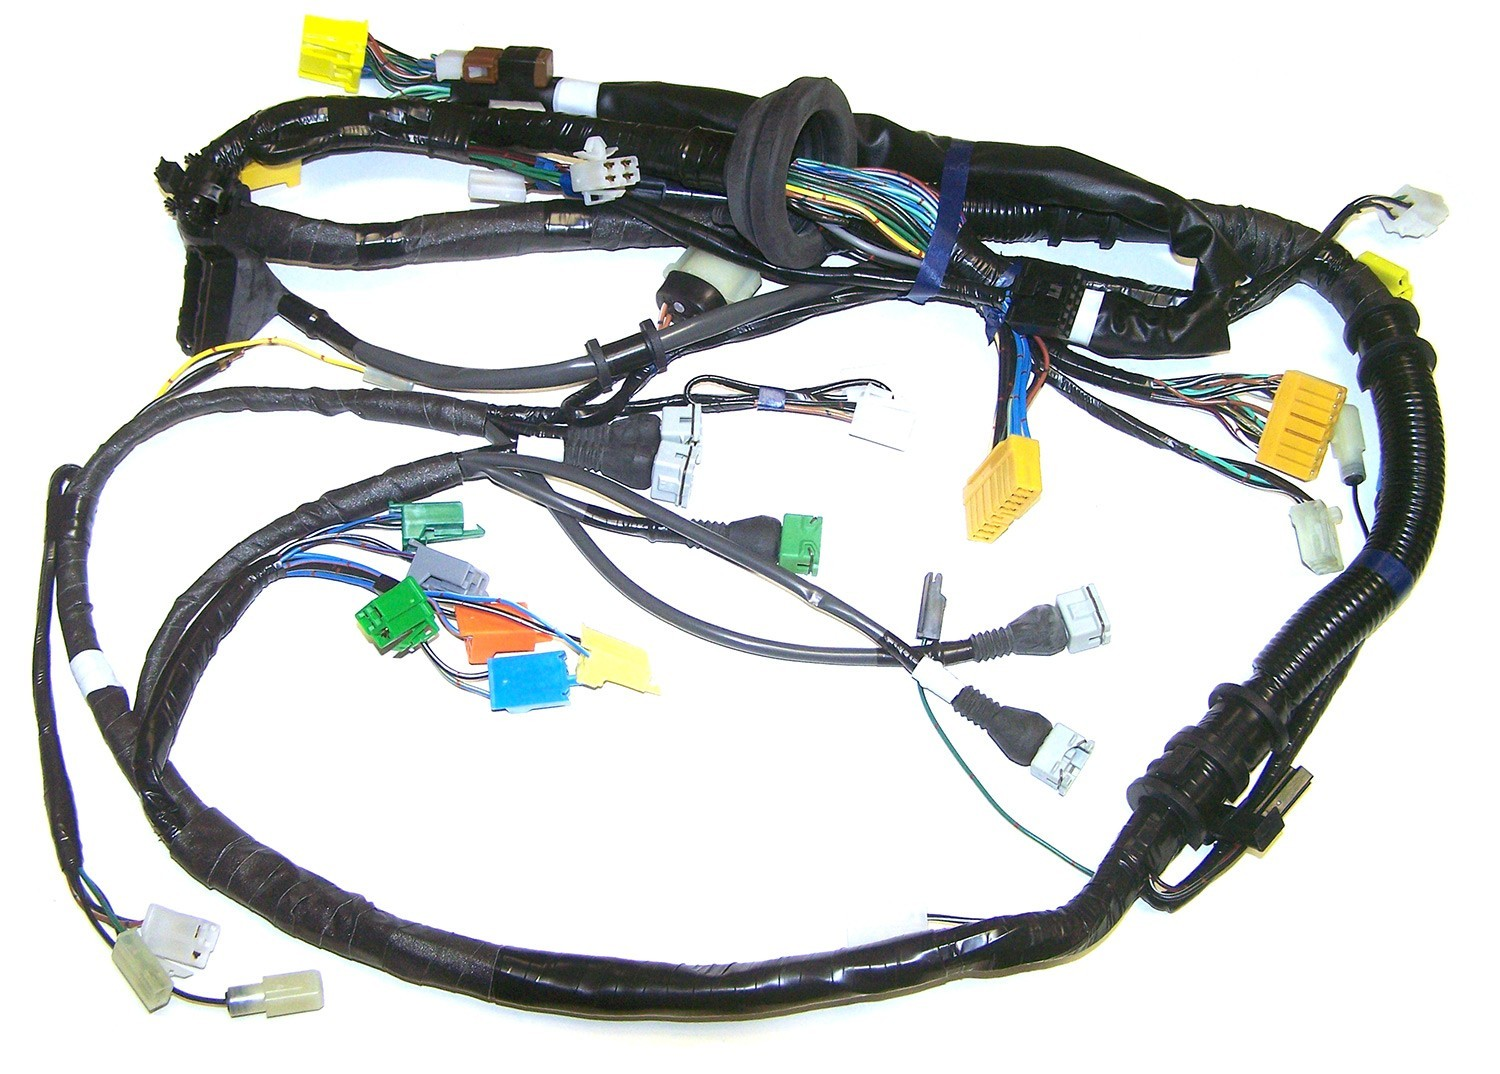 N332 18 051KDetail 87 88 turbo rx7 engine wiring harness (n332 18 051k) engine wiring harness at readyjetset.co